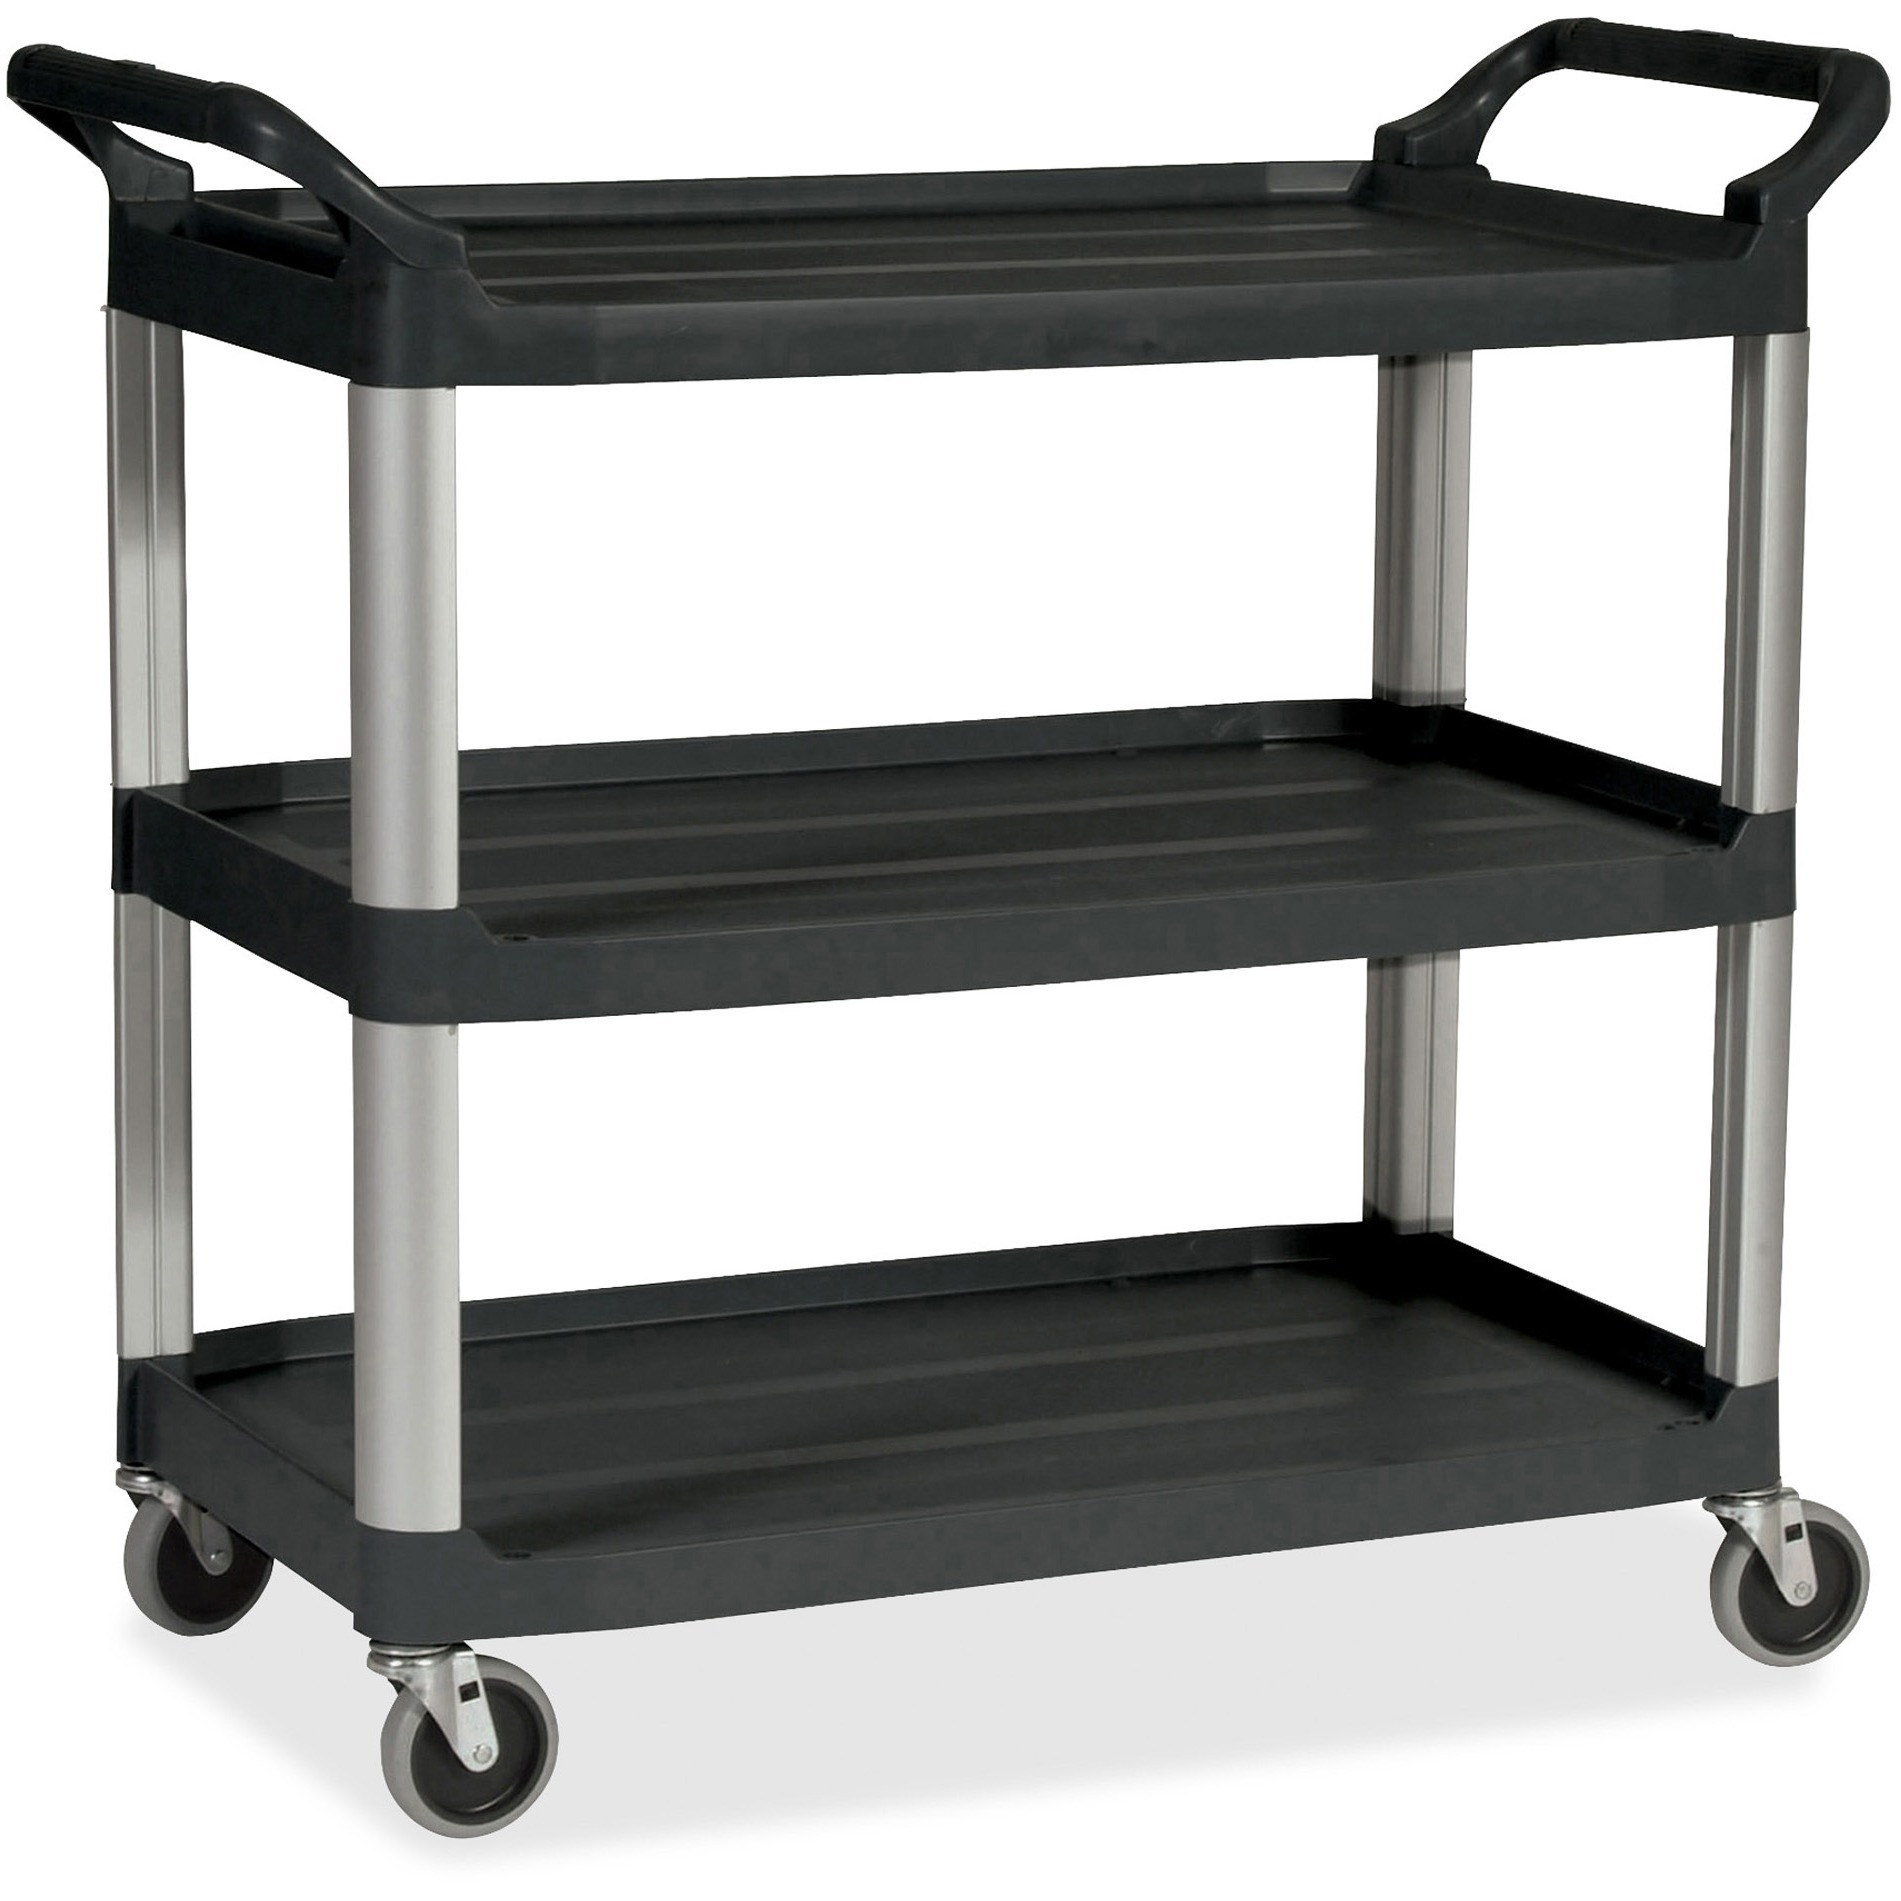 Rubbermaid Commercial, RCP342488BK, Economy Cart, 1 Each, Black by Rubbermaid Commercial Products